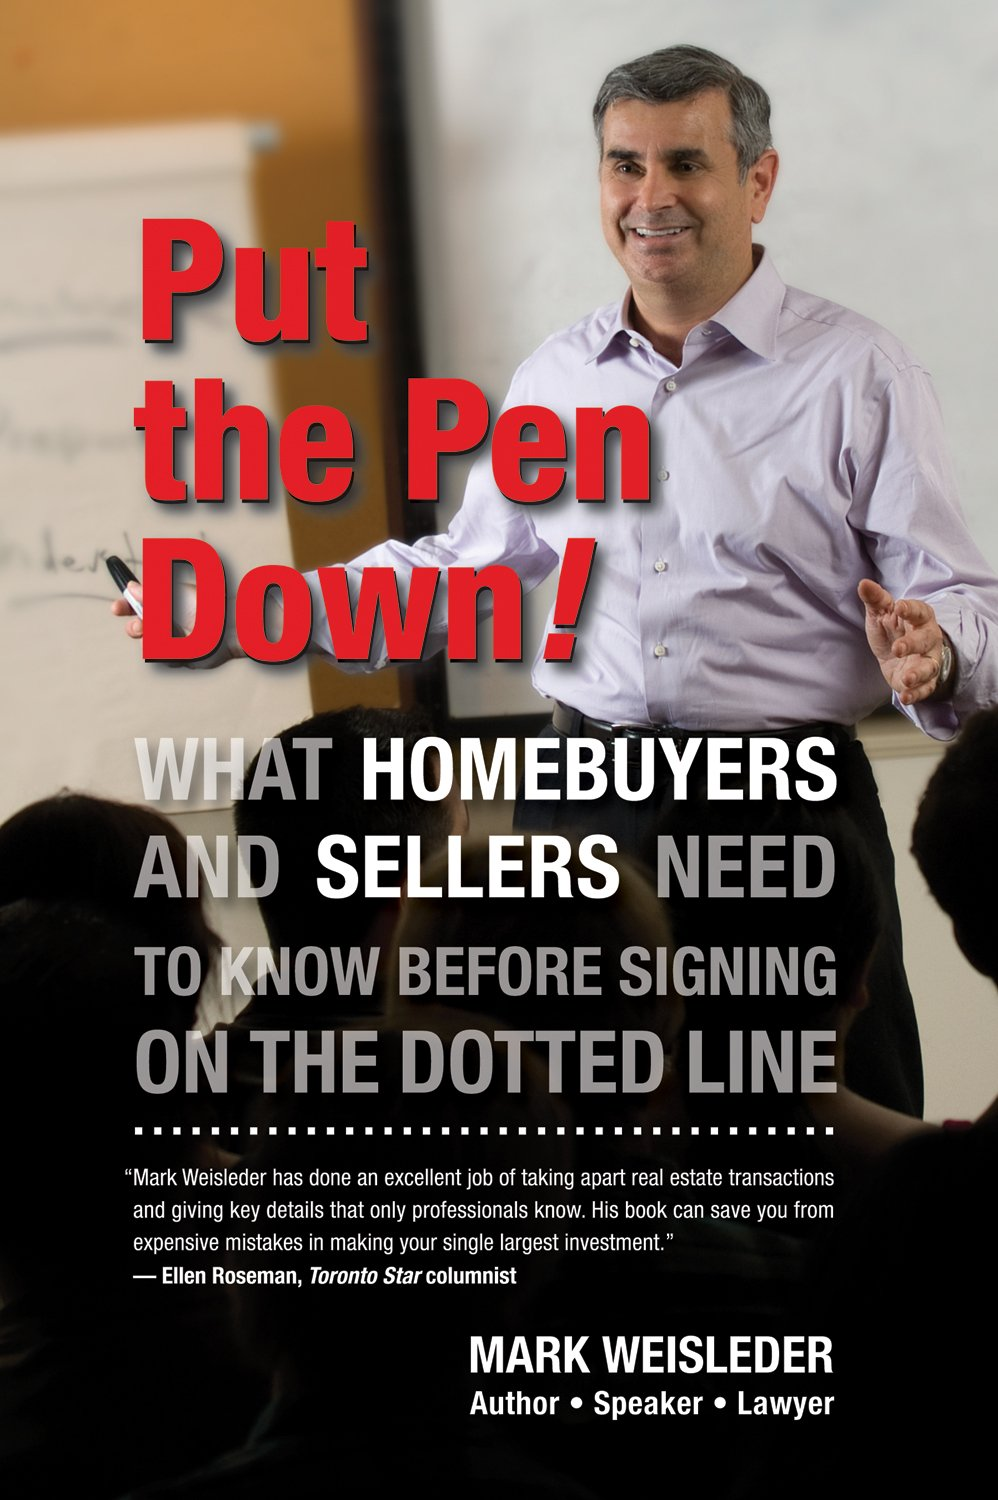 Put the Pen Down!: What Homebuyers and Sellers Need to Know Before Signing on the Dotted Line